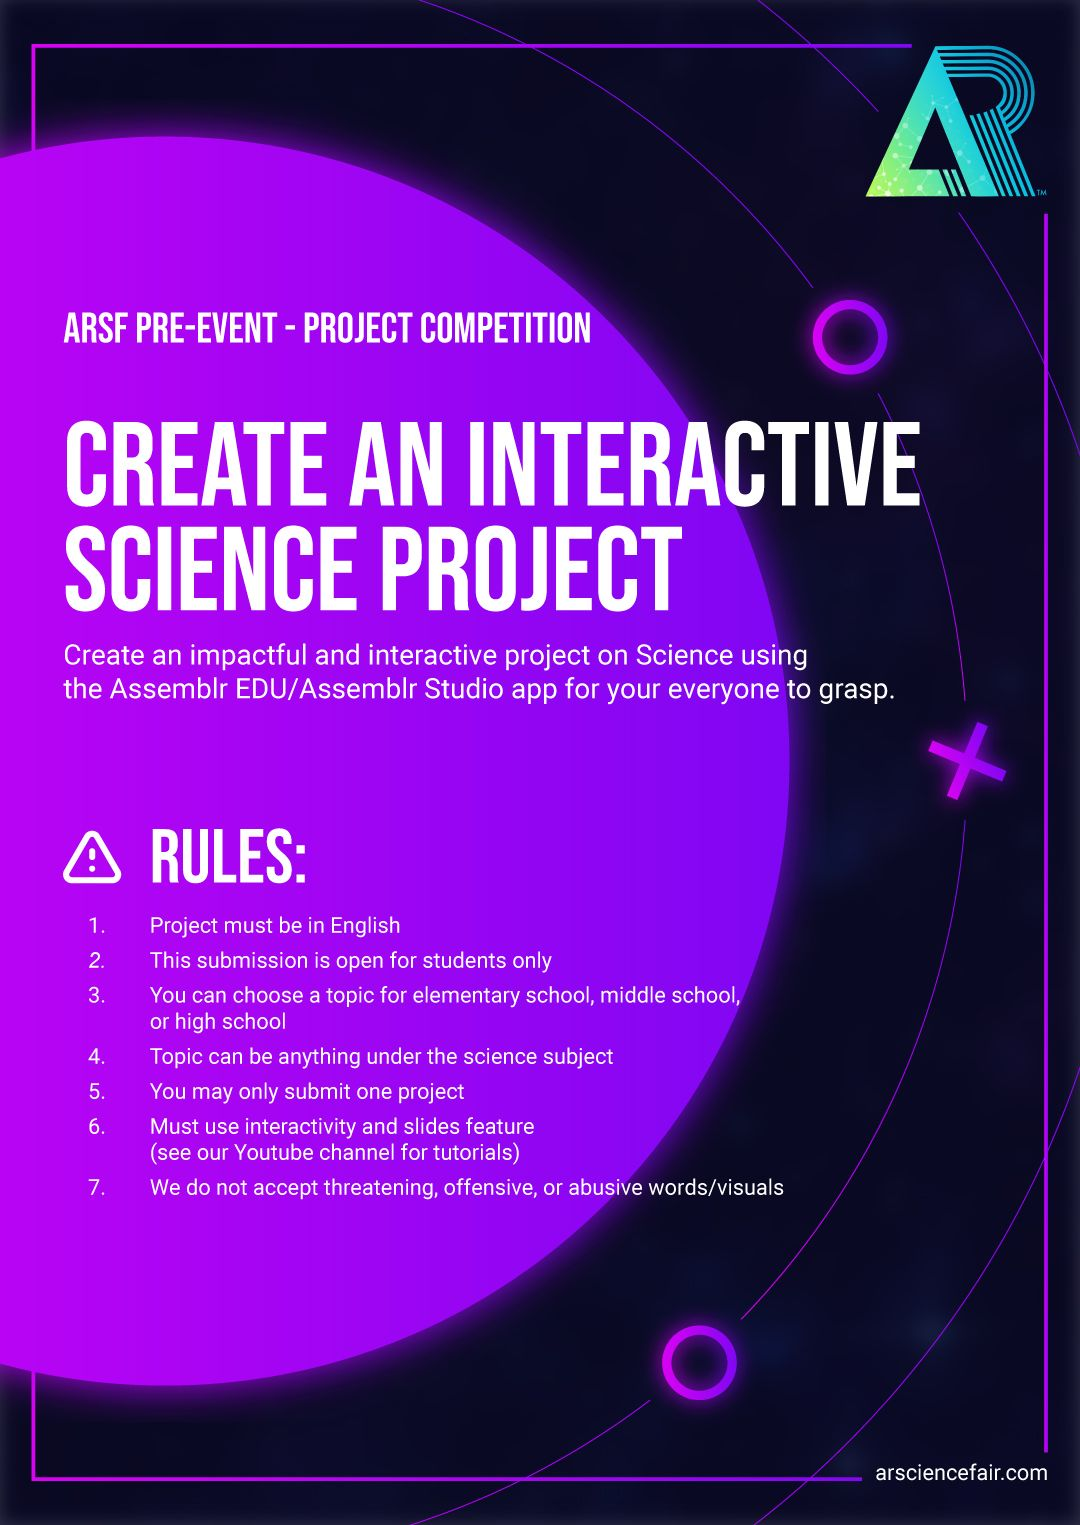 Augmented Reality Science Fair (ARSF) Pre-Event Challenge for students.